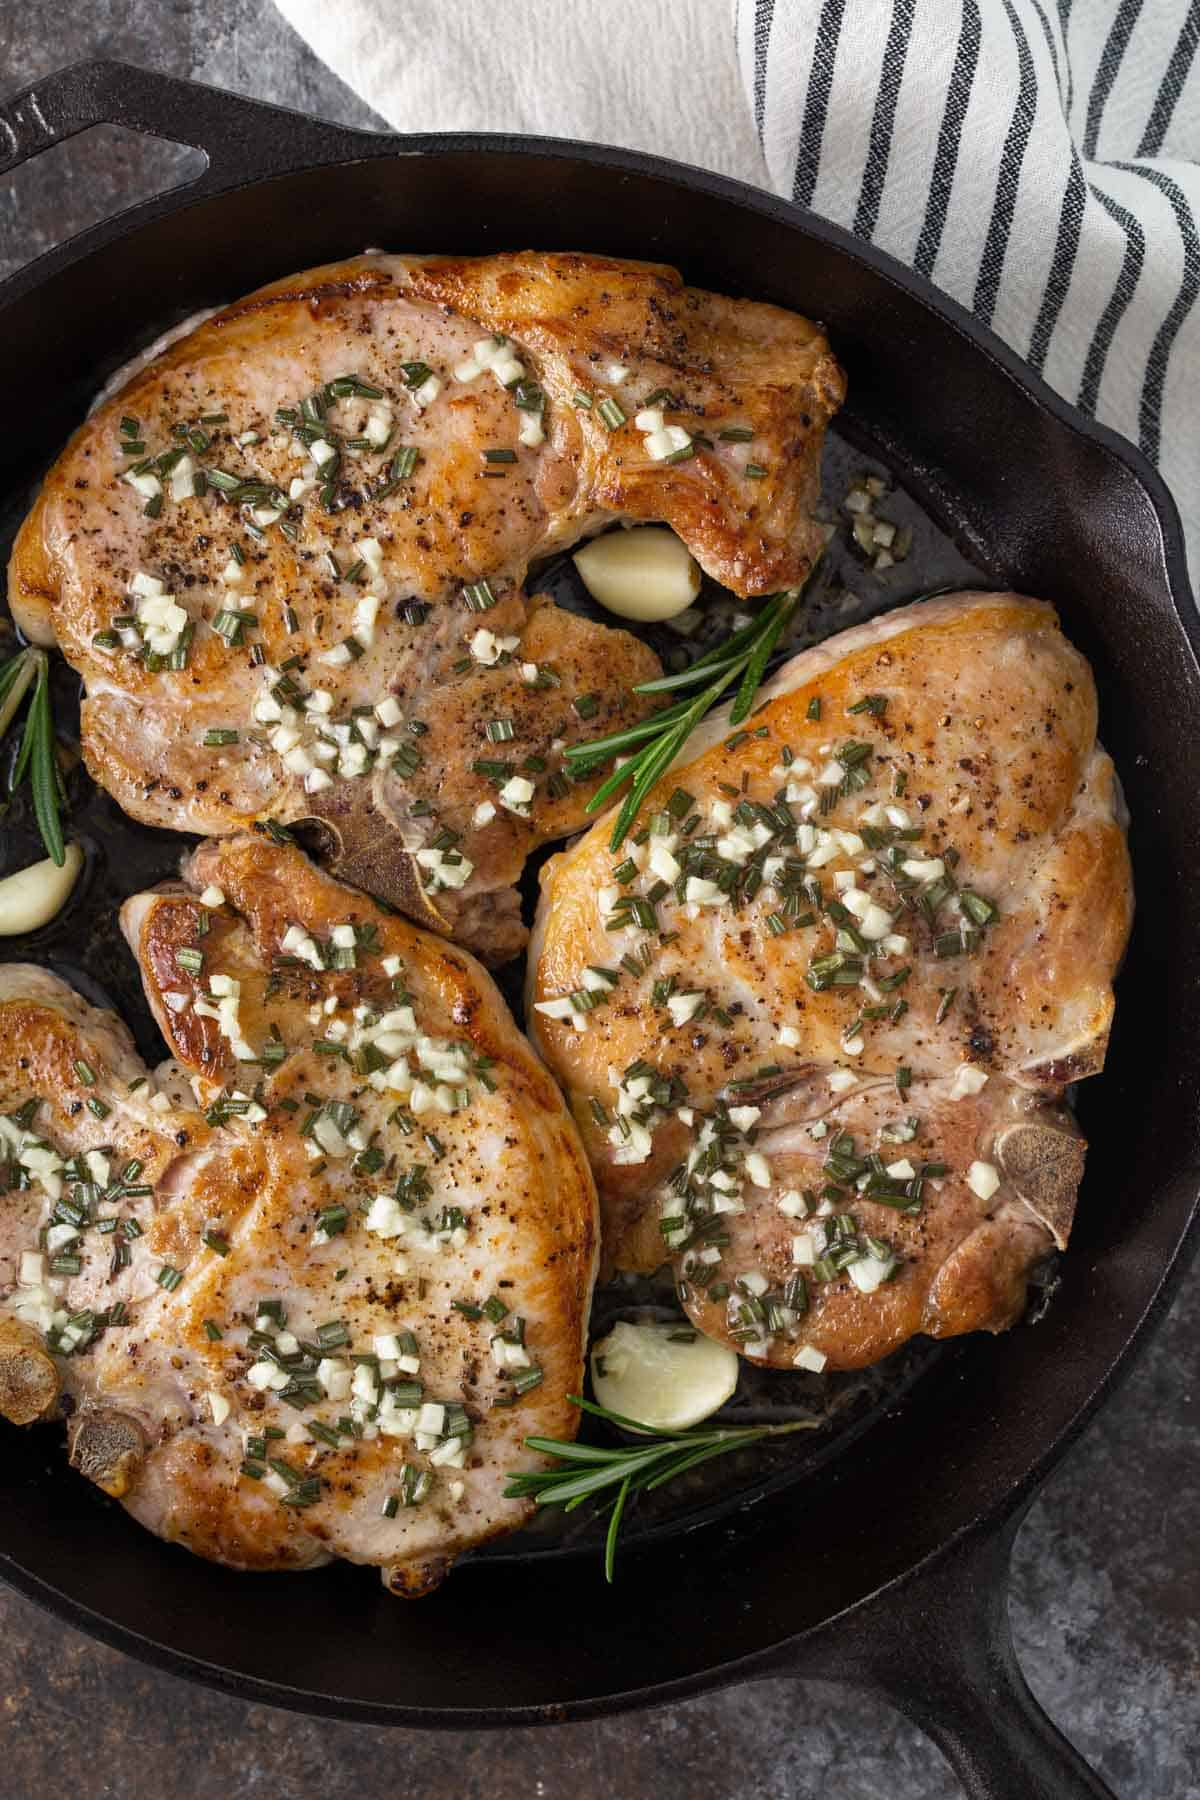 Overhead view of baked garlic and rosemary pork chops in a cast iron skillet.